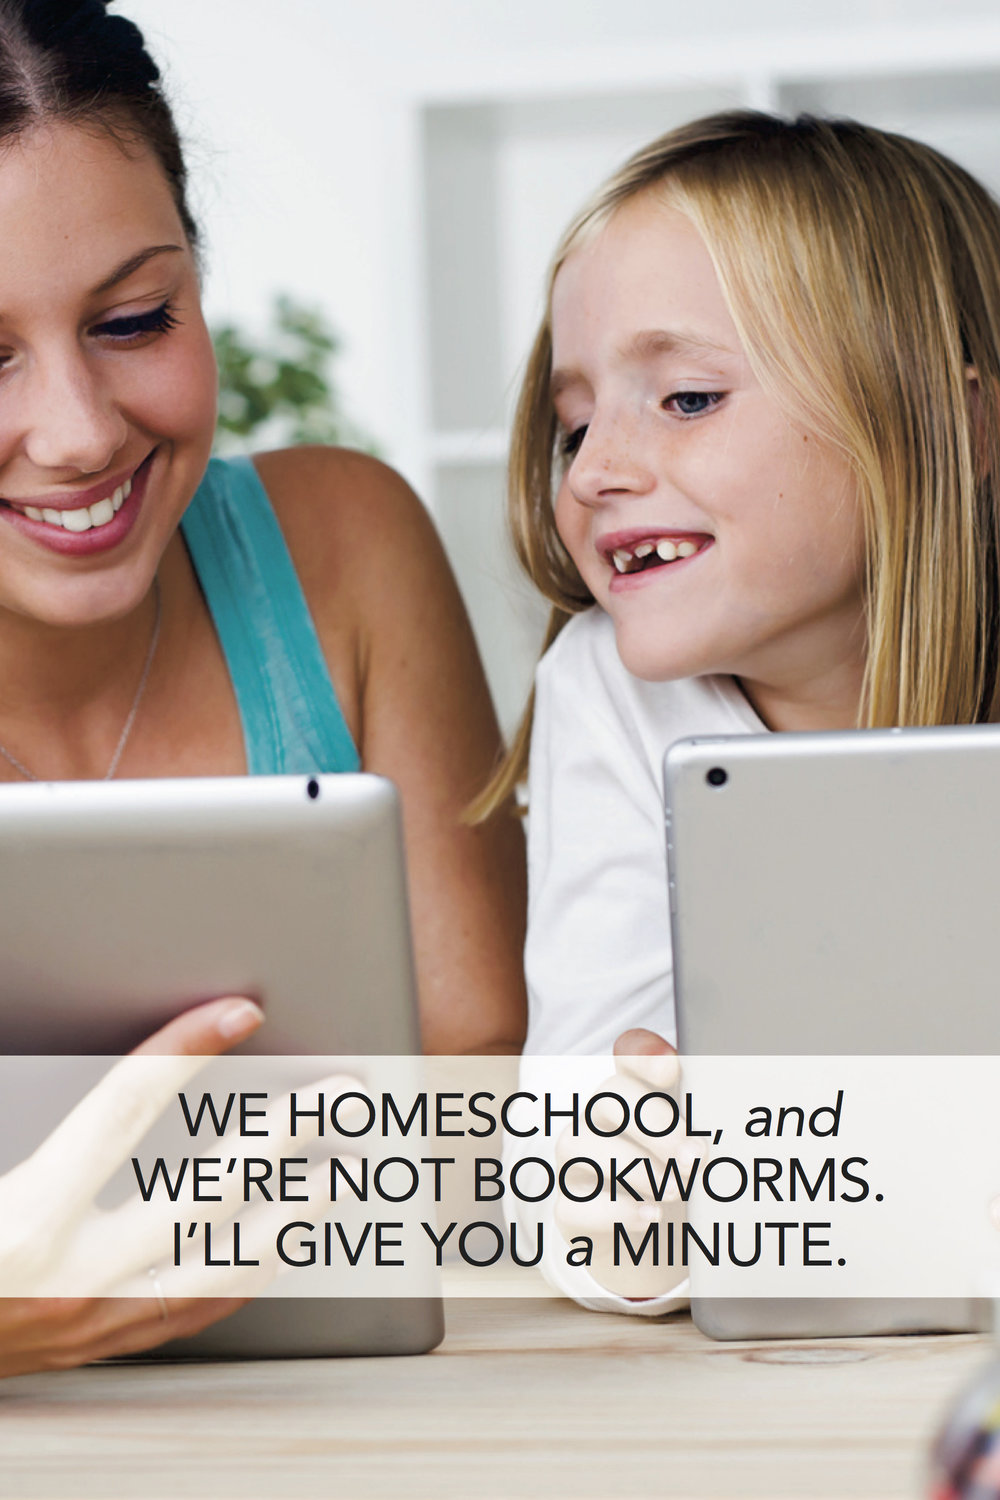 Brace Yourselves: We Are Not Bookworms